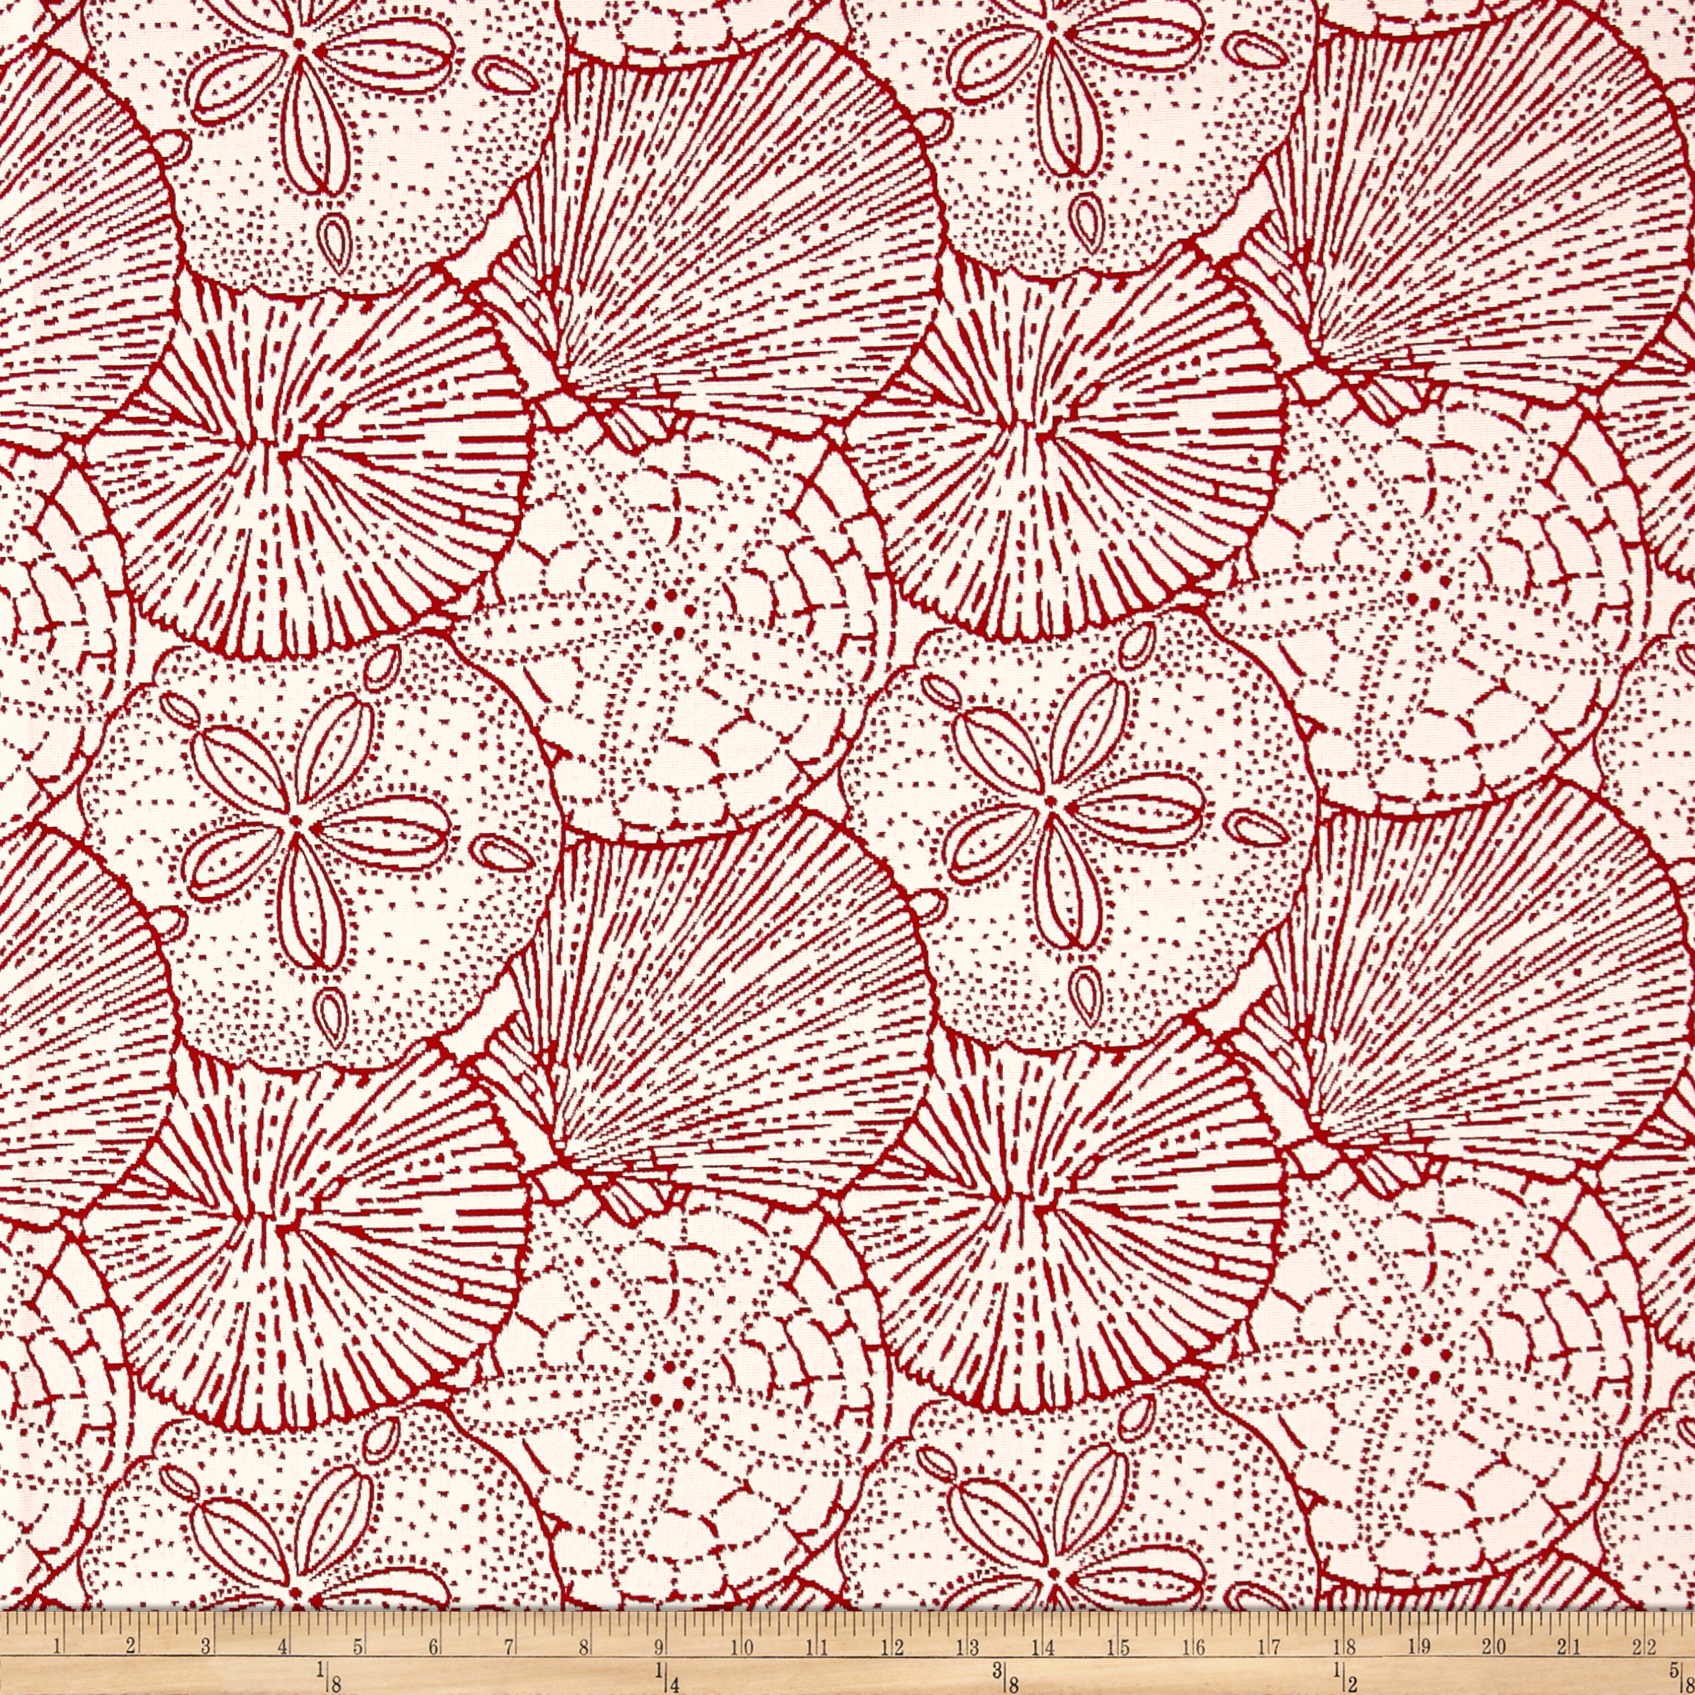 P/Kaufmann Outdoor Jacquard Sea Shells Red Snapper Olefin Fabric by P Kaufman in USA